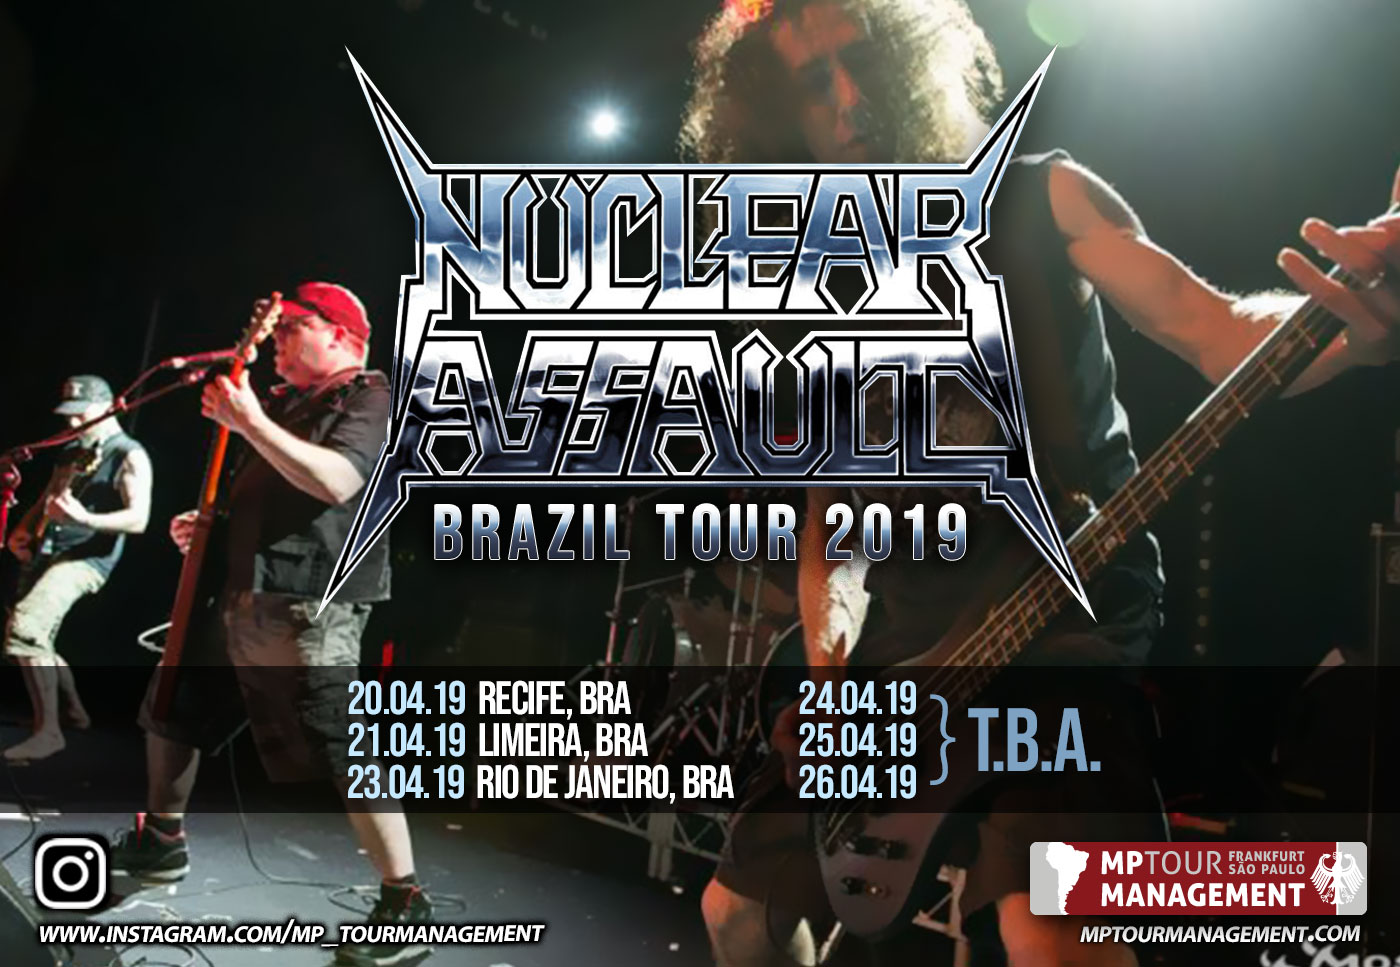 Nuclear Assault Brazil Tour 2019